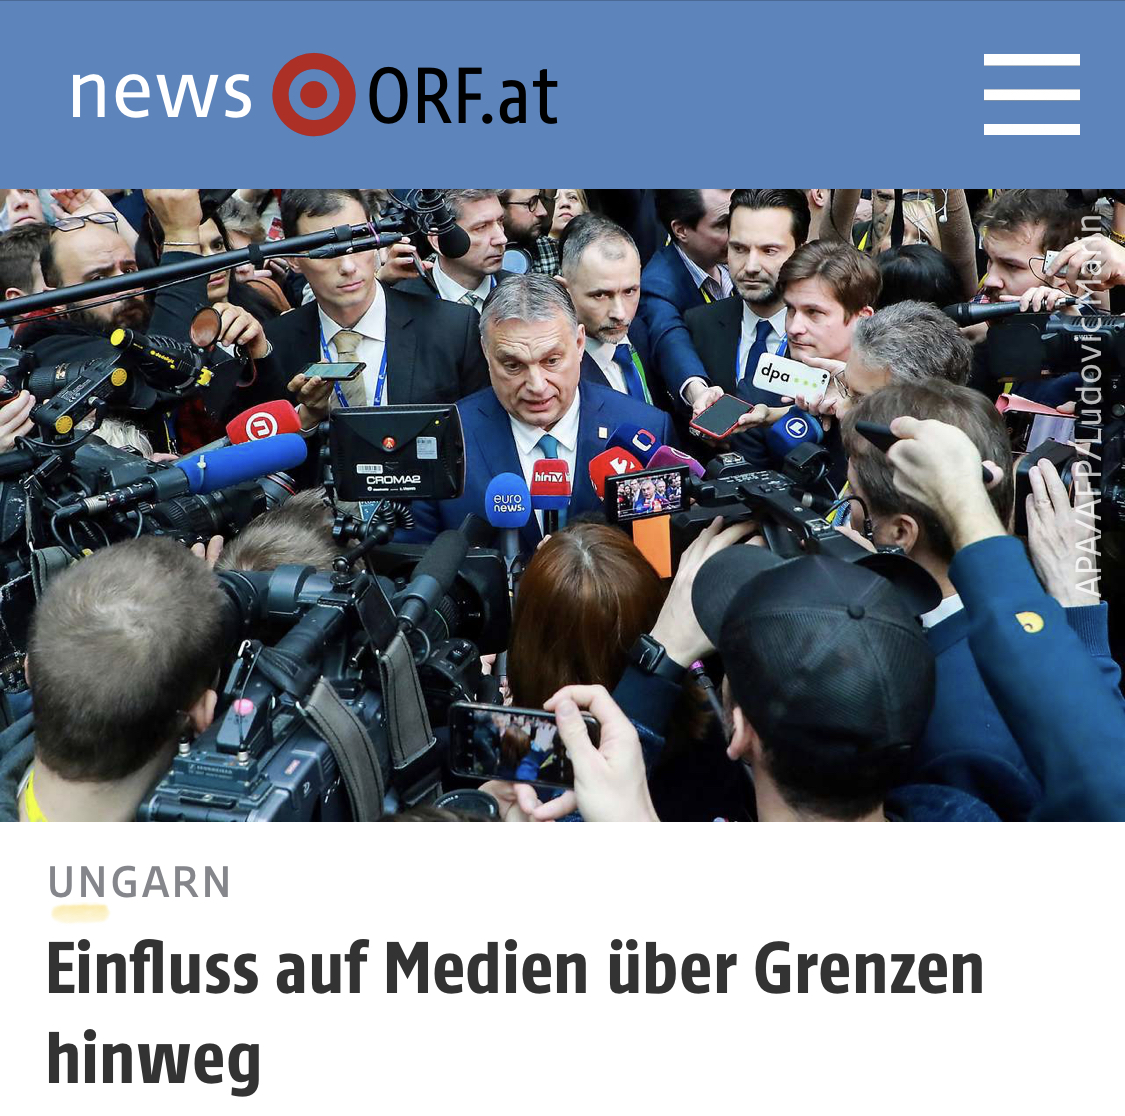 ORF: How Hungary influences media in Slovenia and North Macedonia